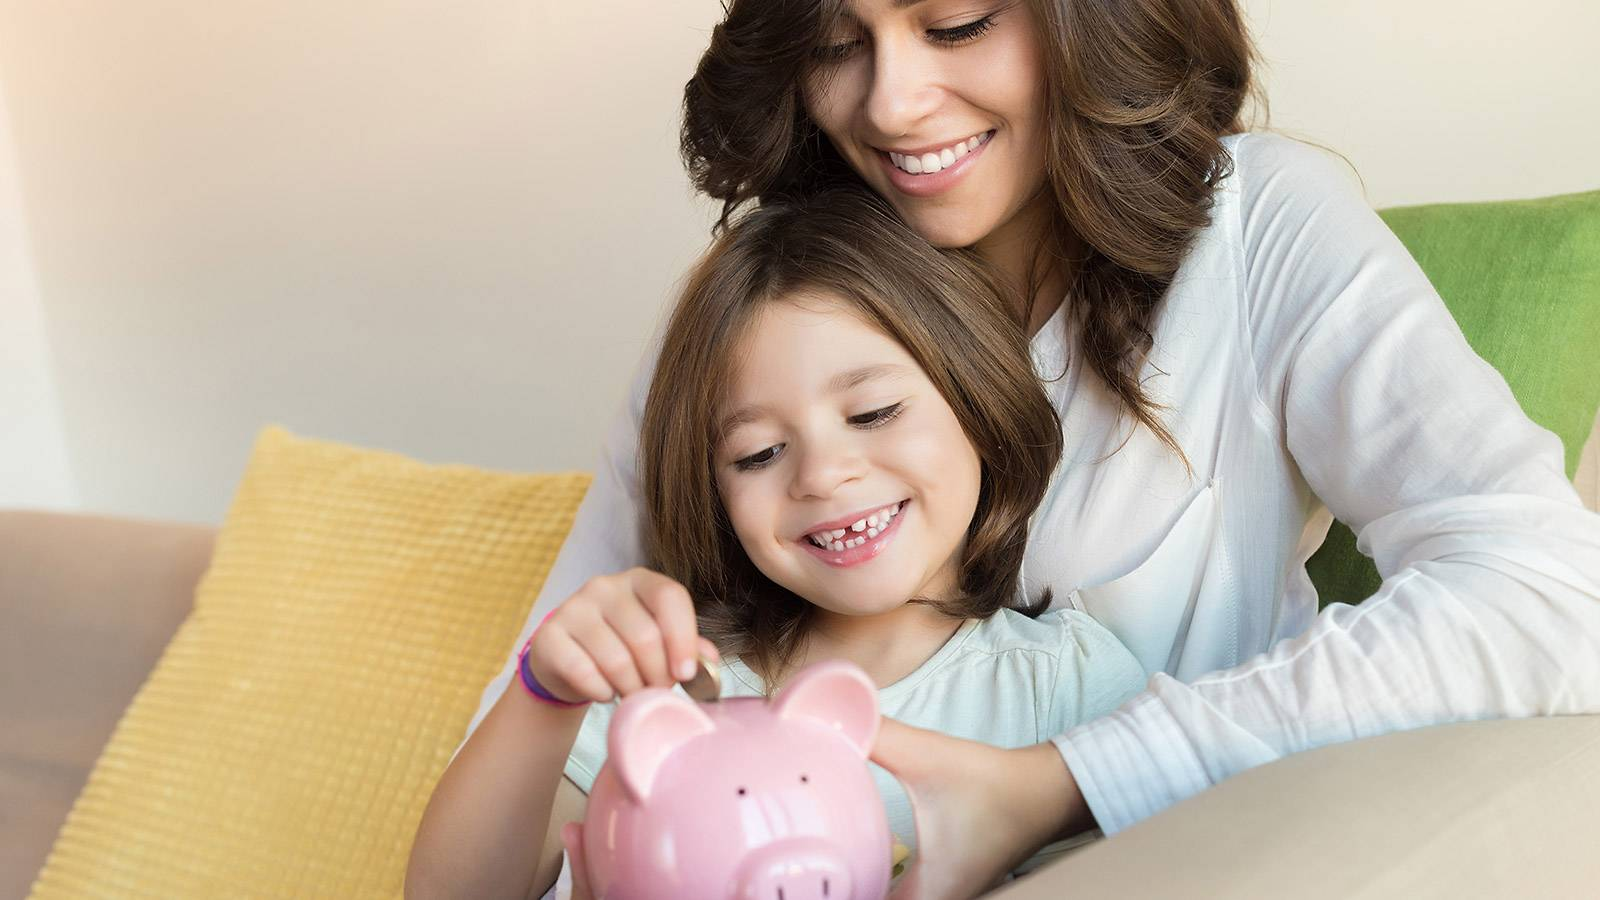 Kids-16-money-saving-ideas-for-fun-with-your-kids